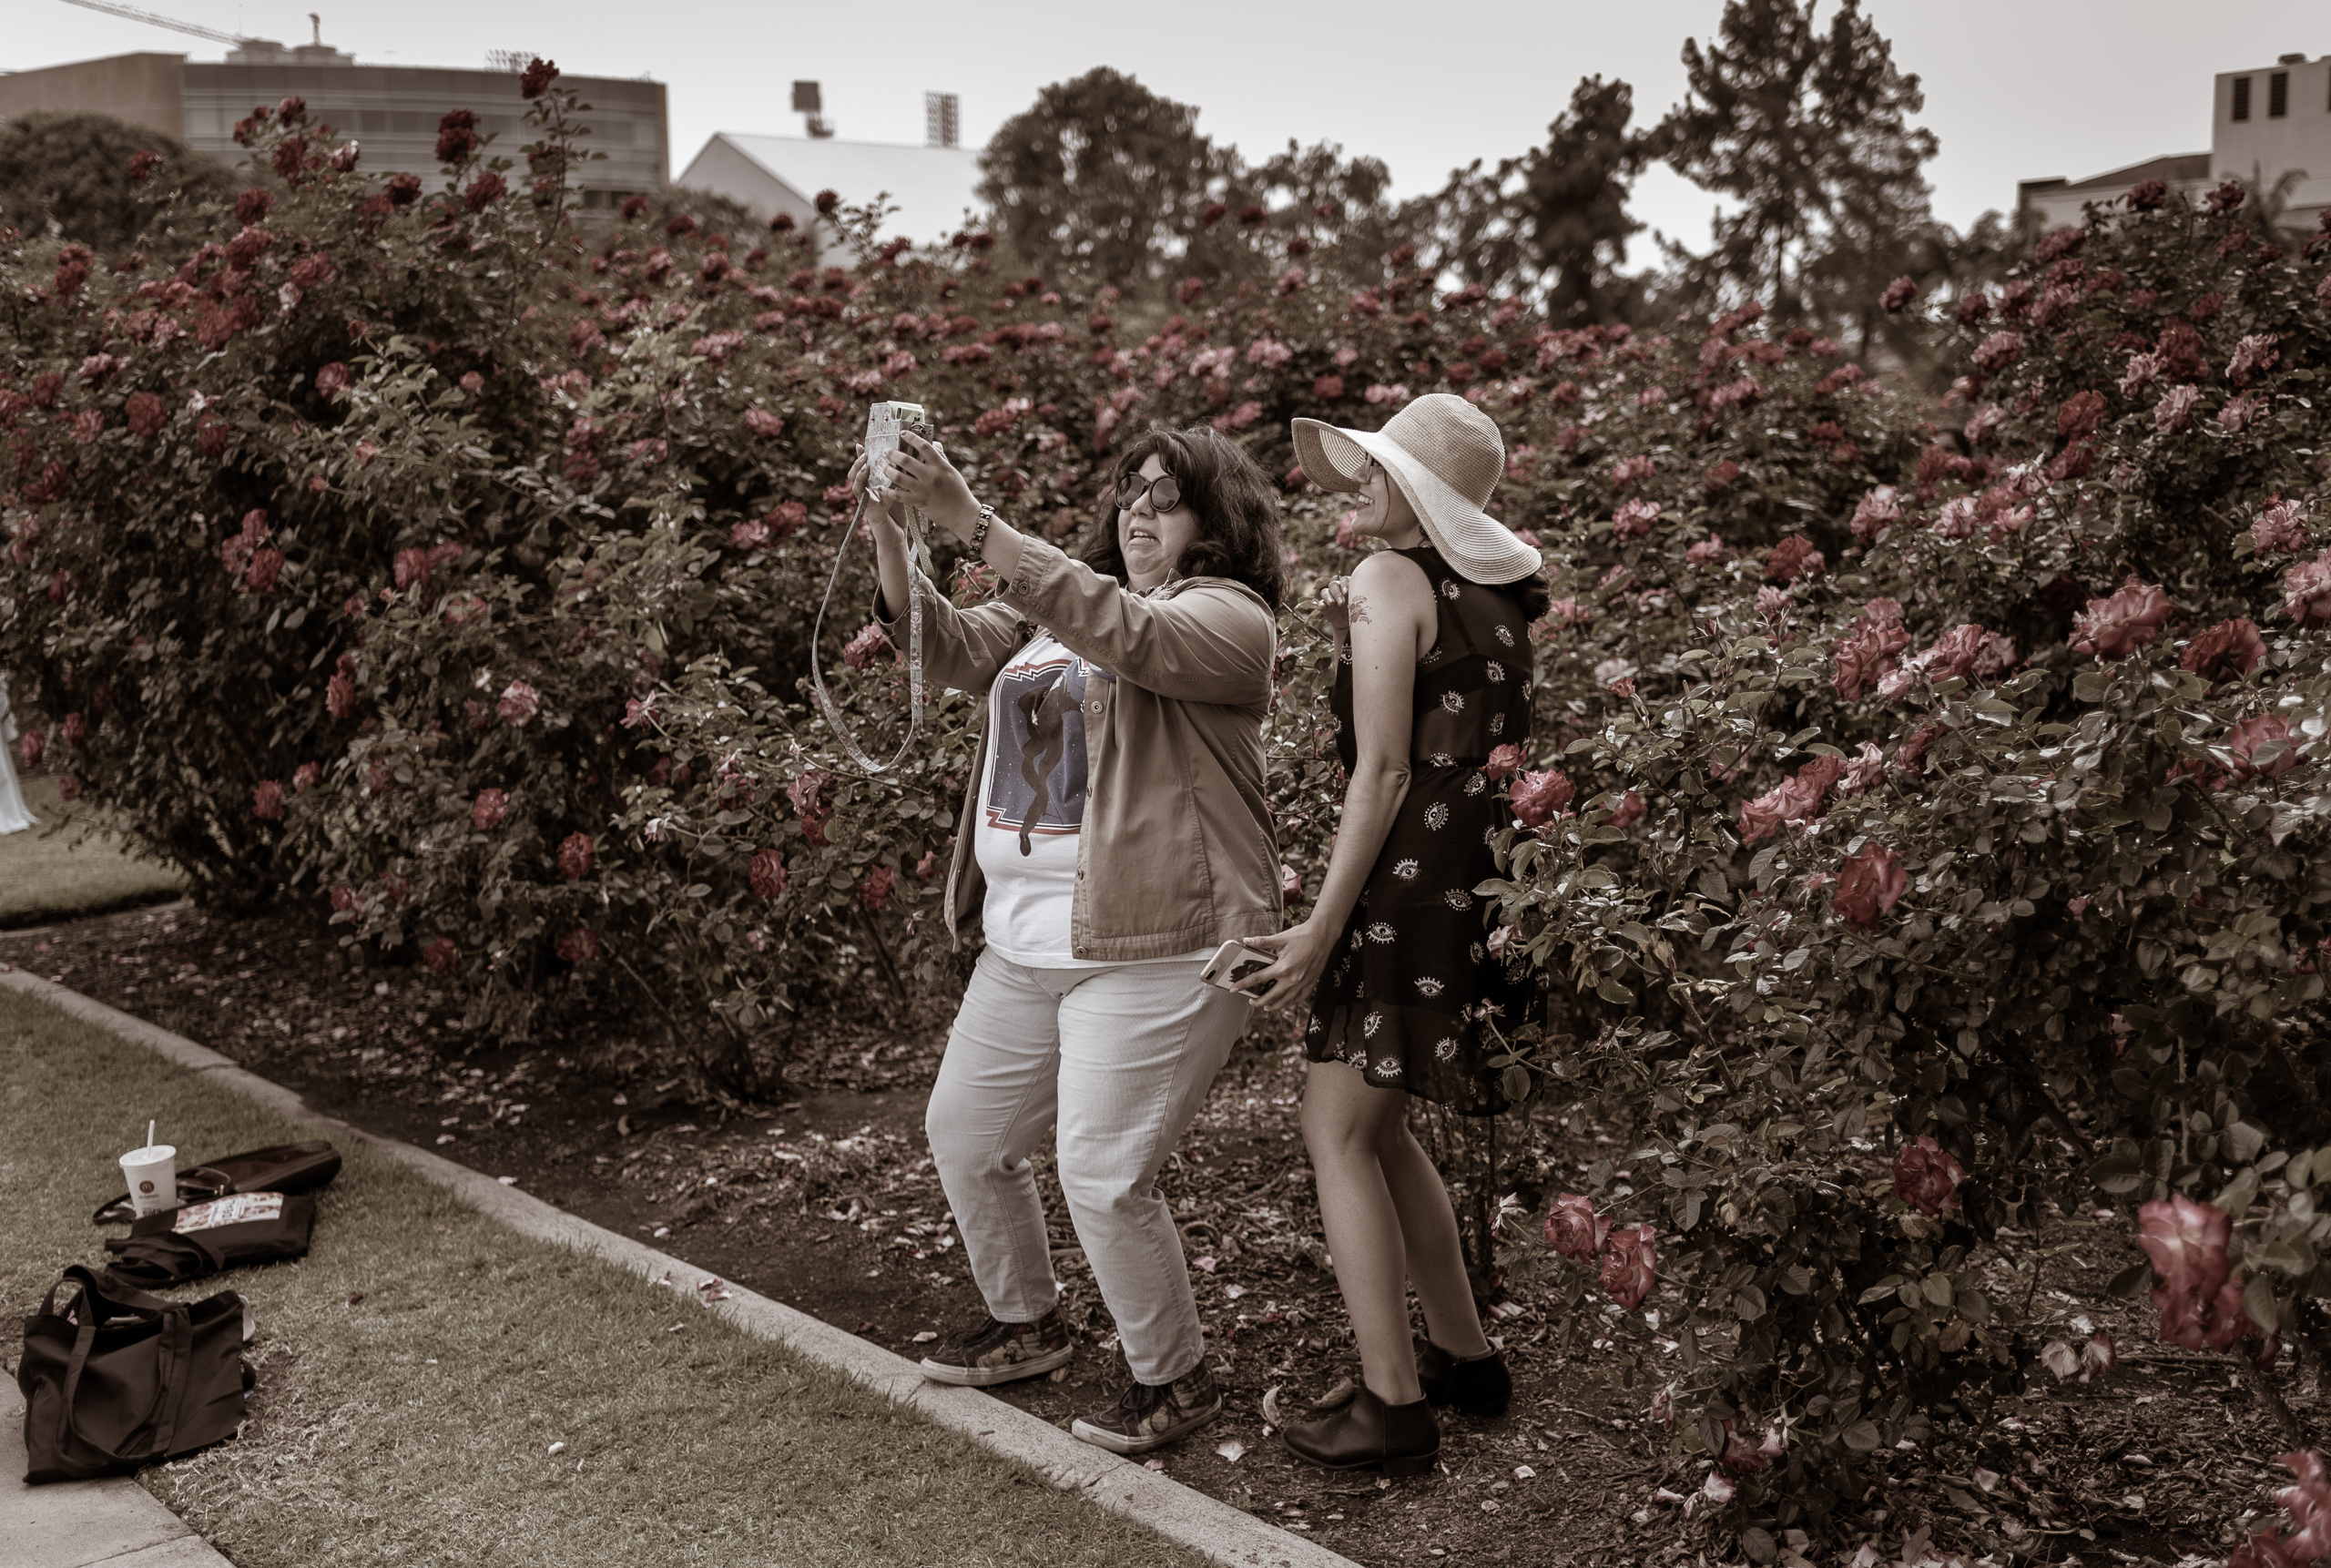 two women stand in the Rose Garden in Exposition Park in Los Angeles. They are surrounded by myriad large blooming roses. One holds an instant film camera out toward them. The one holding the camera is about to smile but is currently wearing a sort of grimace at the precariousness of fitting themselves in the frame and not falling into all the rose bushes